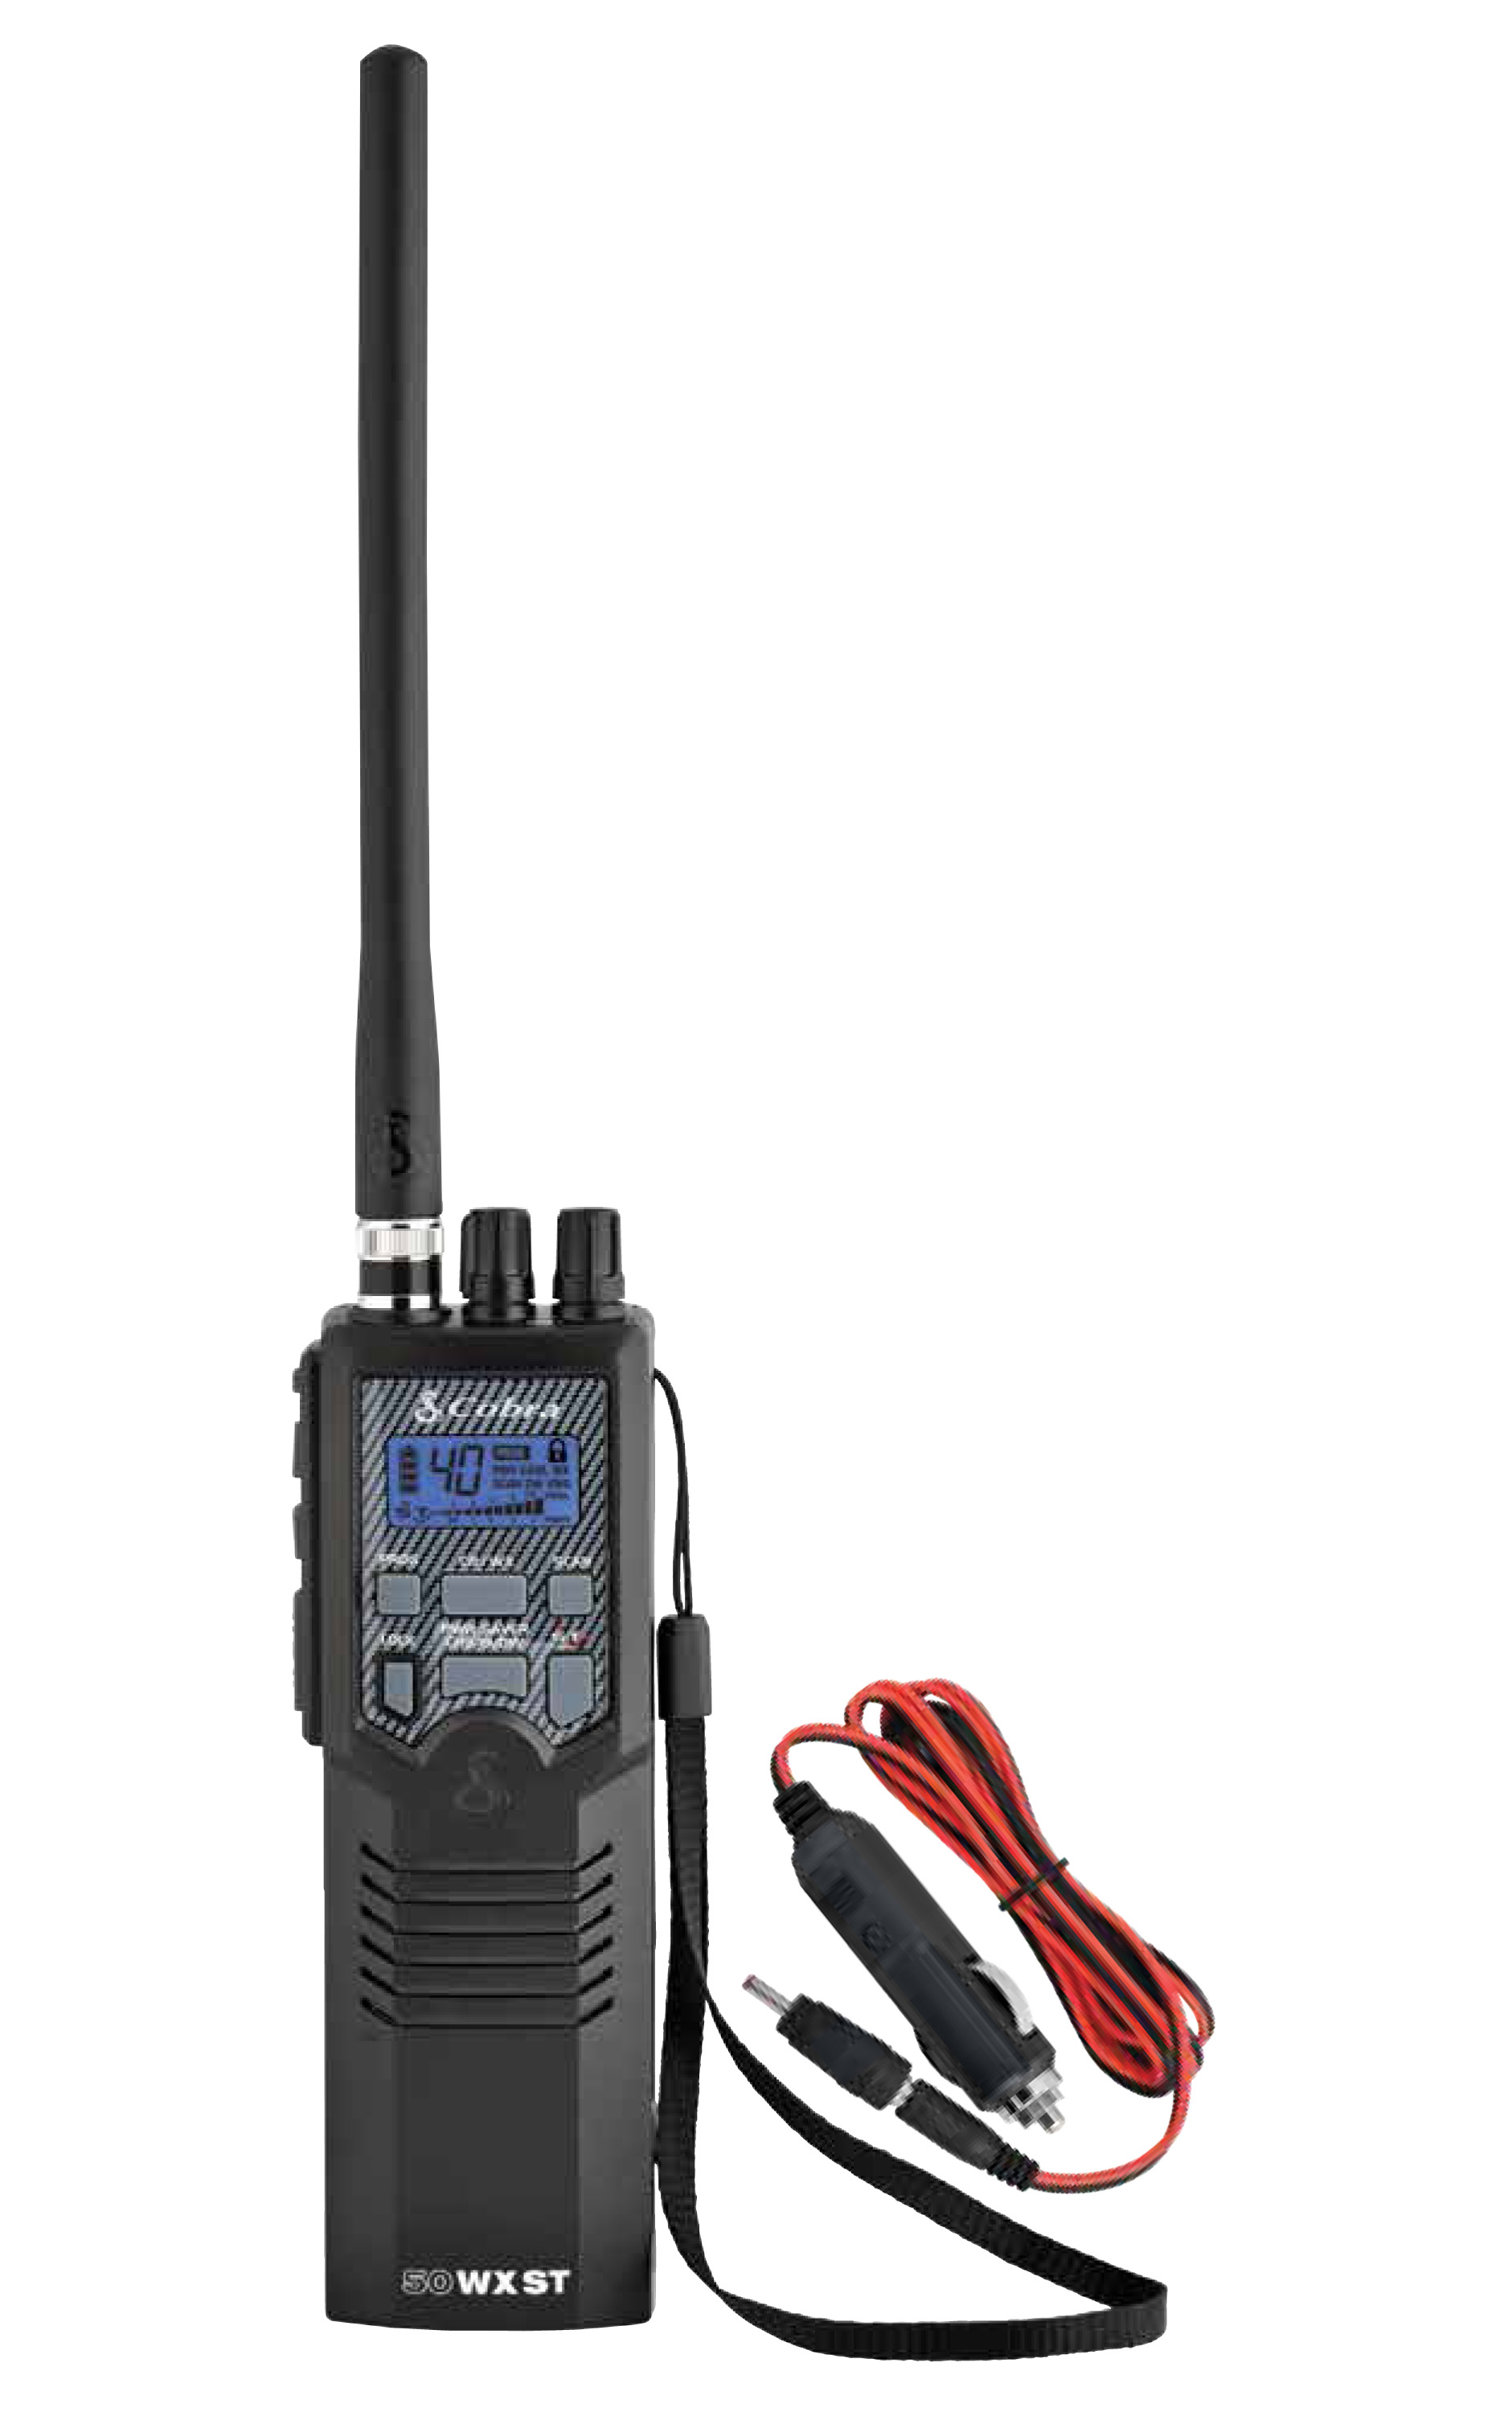 COBRA - HH50WXST HANDHELD CB RADIO WITH 10 NOAA WEATHER CHANNELS & DC CIGARETTE POWER CORD